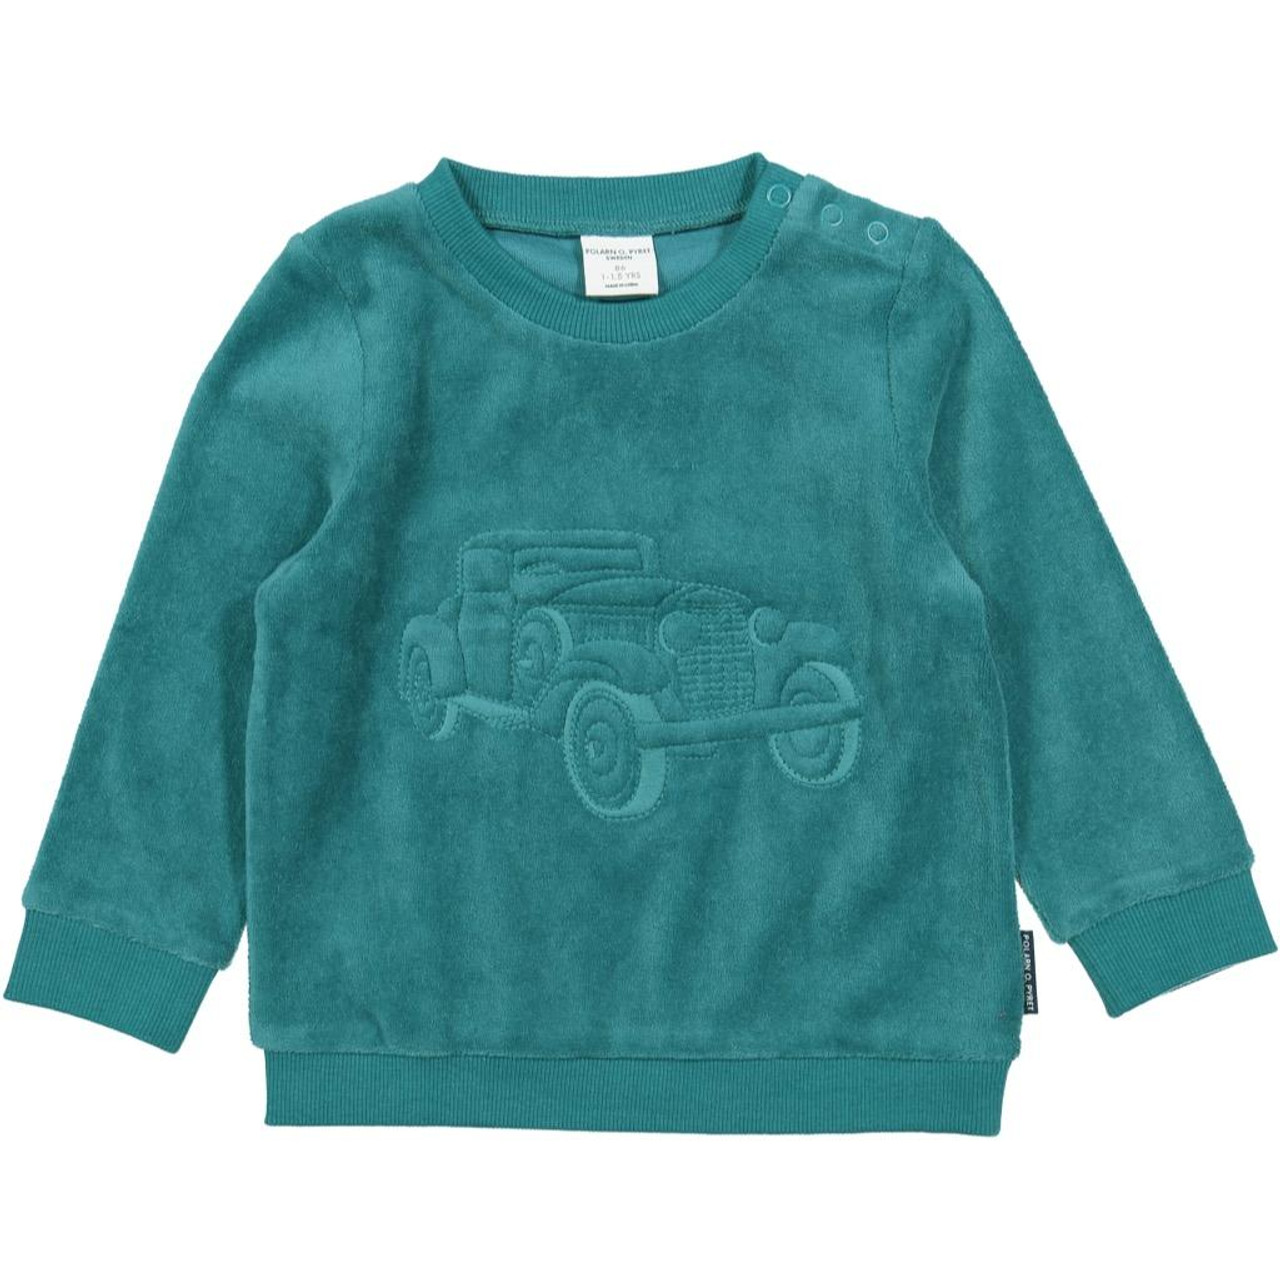 Polarn O Pyret Softy Embroidered Velour TOP Baby